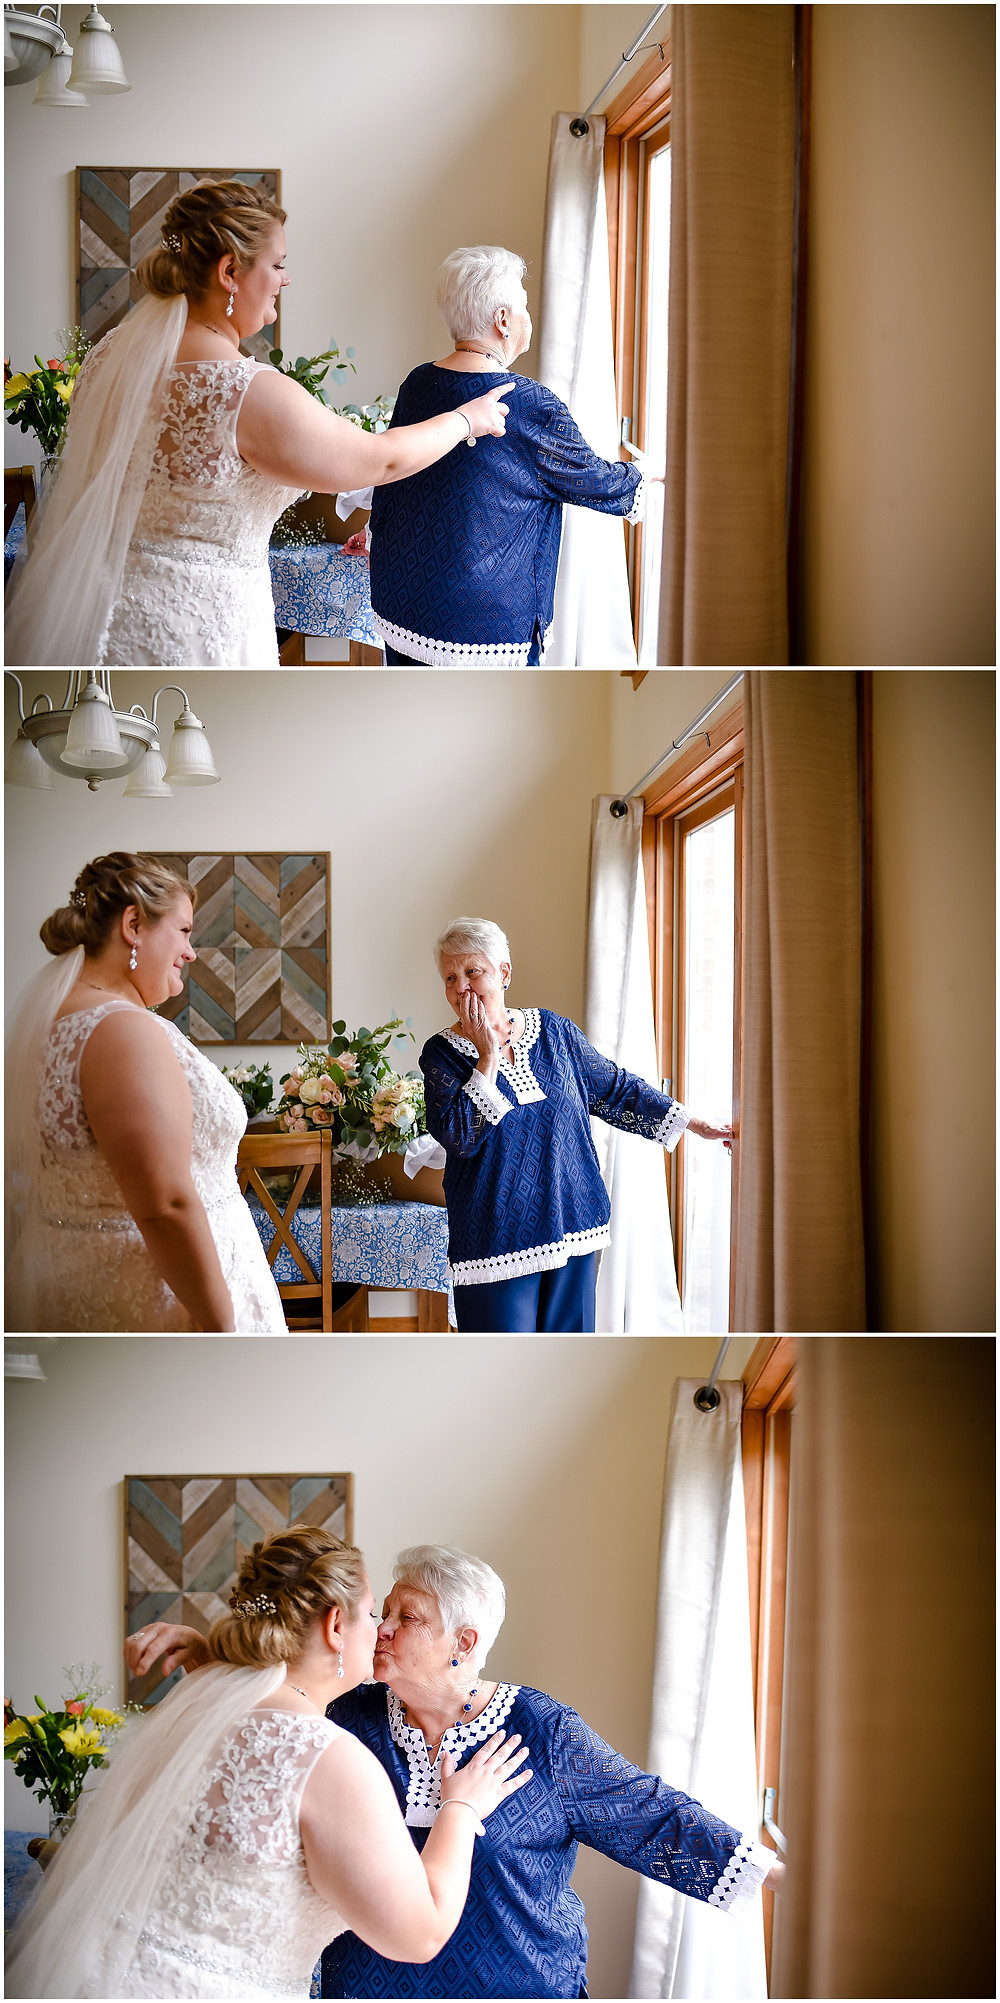 Barrington Wedding Photographer, Chicago Wedding Photographer, Addison Wedding Photographer, Naperville Wedding Photographer, Makray Golf Club Wedding, Makray Memorial Golf Club, Makray Wedding, Makray Wedding Photographer, Grandmother First Look, Grandma First Look